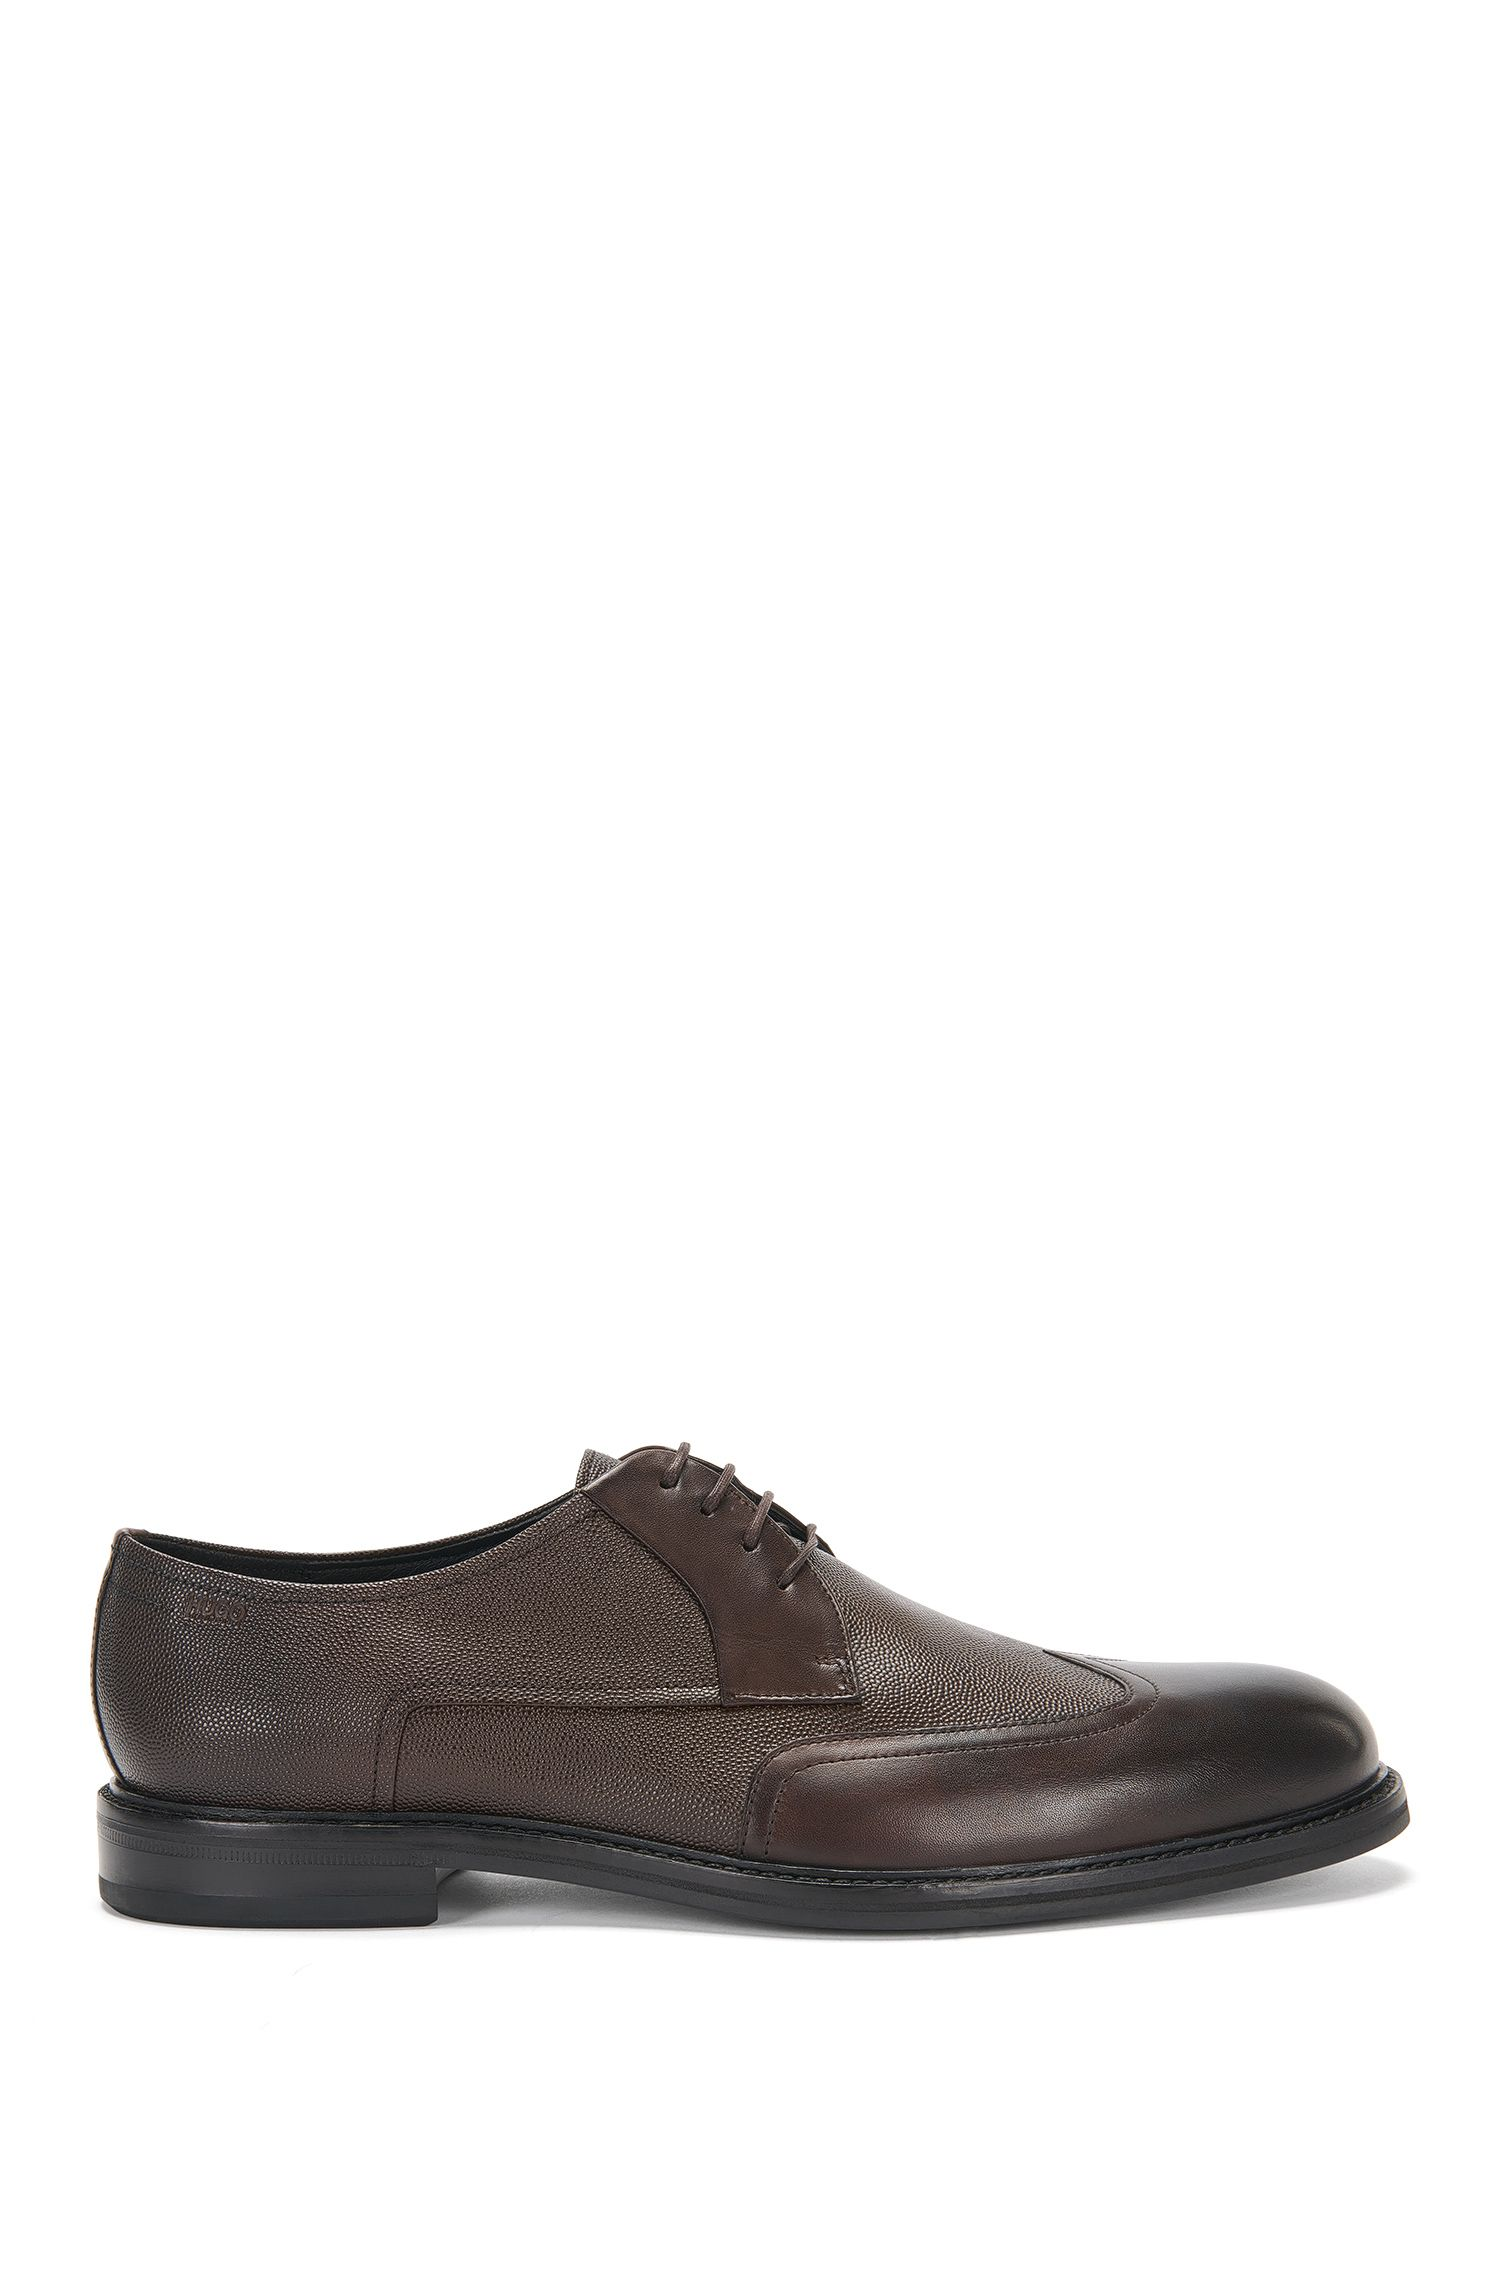 Leather lace-up shoes with a mixture of textures: 'Neoclass_Derb_buwt'